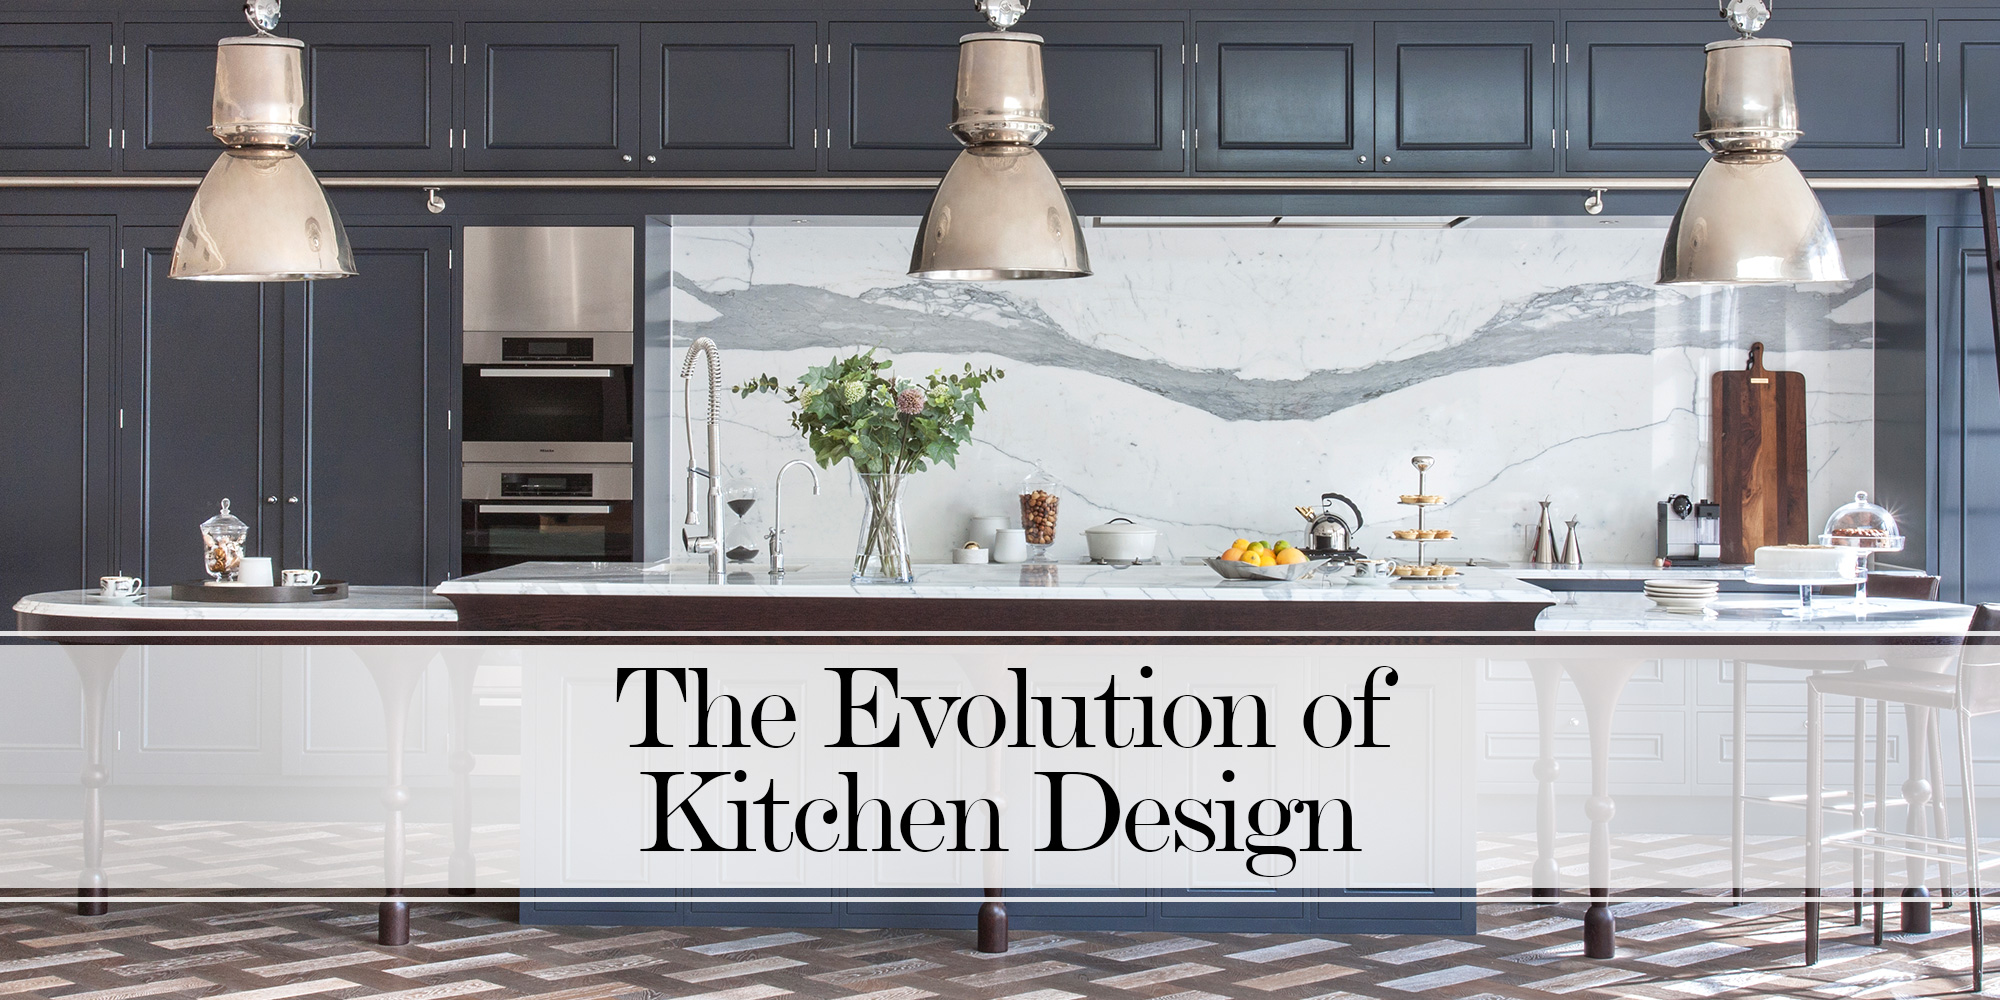 The Evolution Of Kitchen Design   The LuxPad   The Latest Luxury Home  Fashion News   Amara